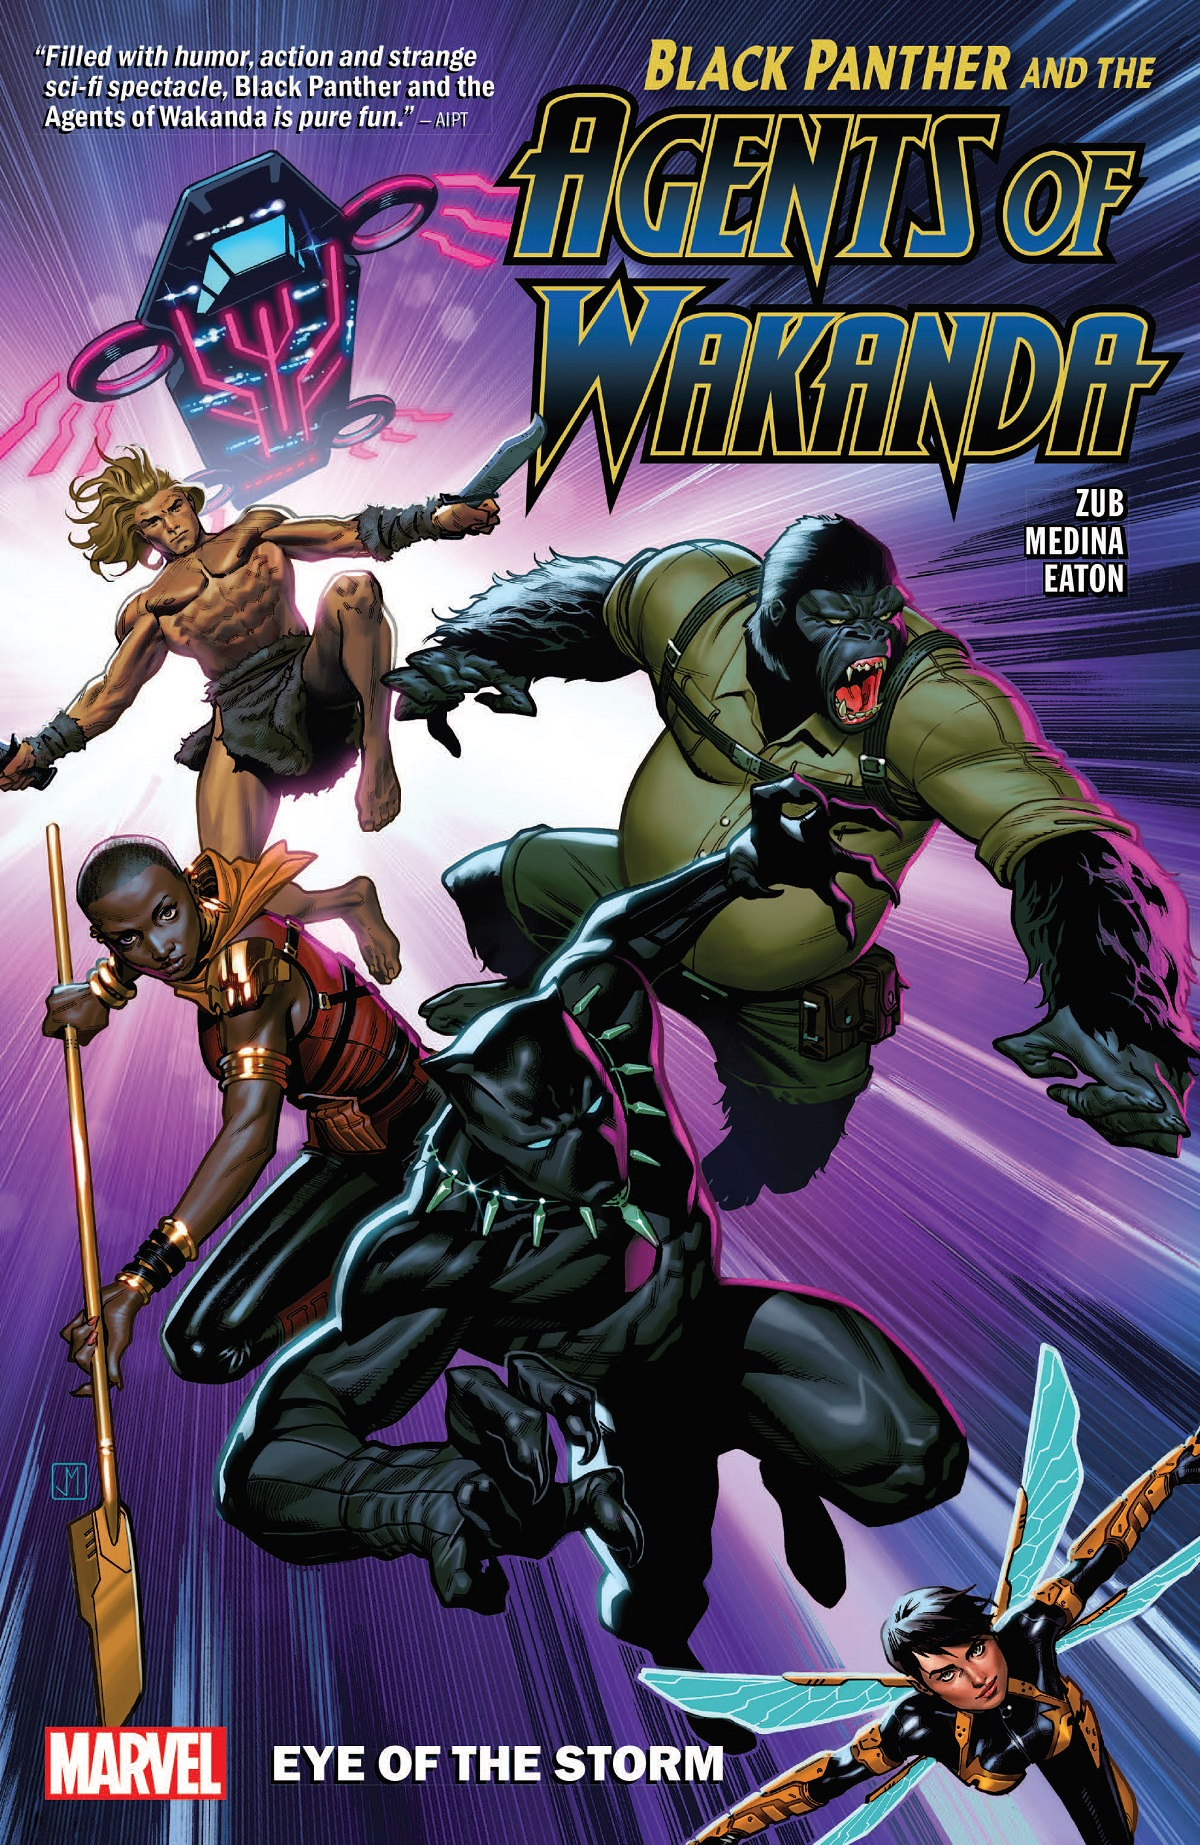 Black Panther And The Agents Of Wakanda Vol. 1: Eye Of The Storm (Trade Paperback)